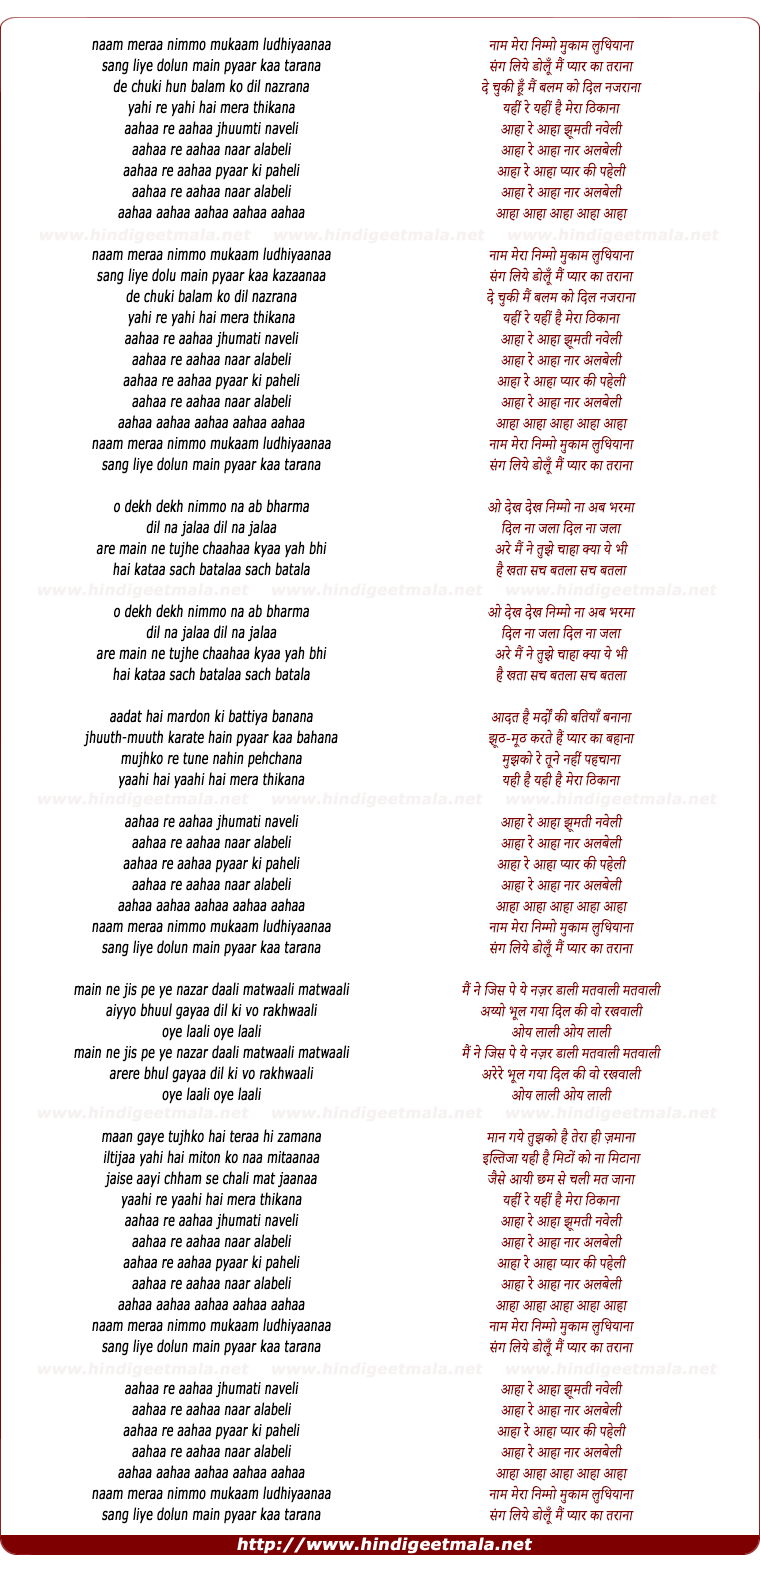 lyrics of song Naam Mera Nimmo Mukam Ludhiana